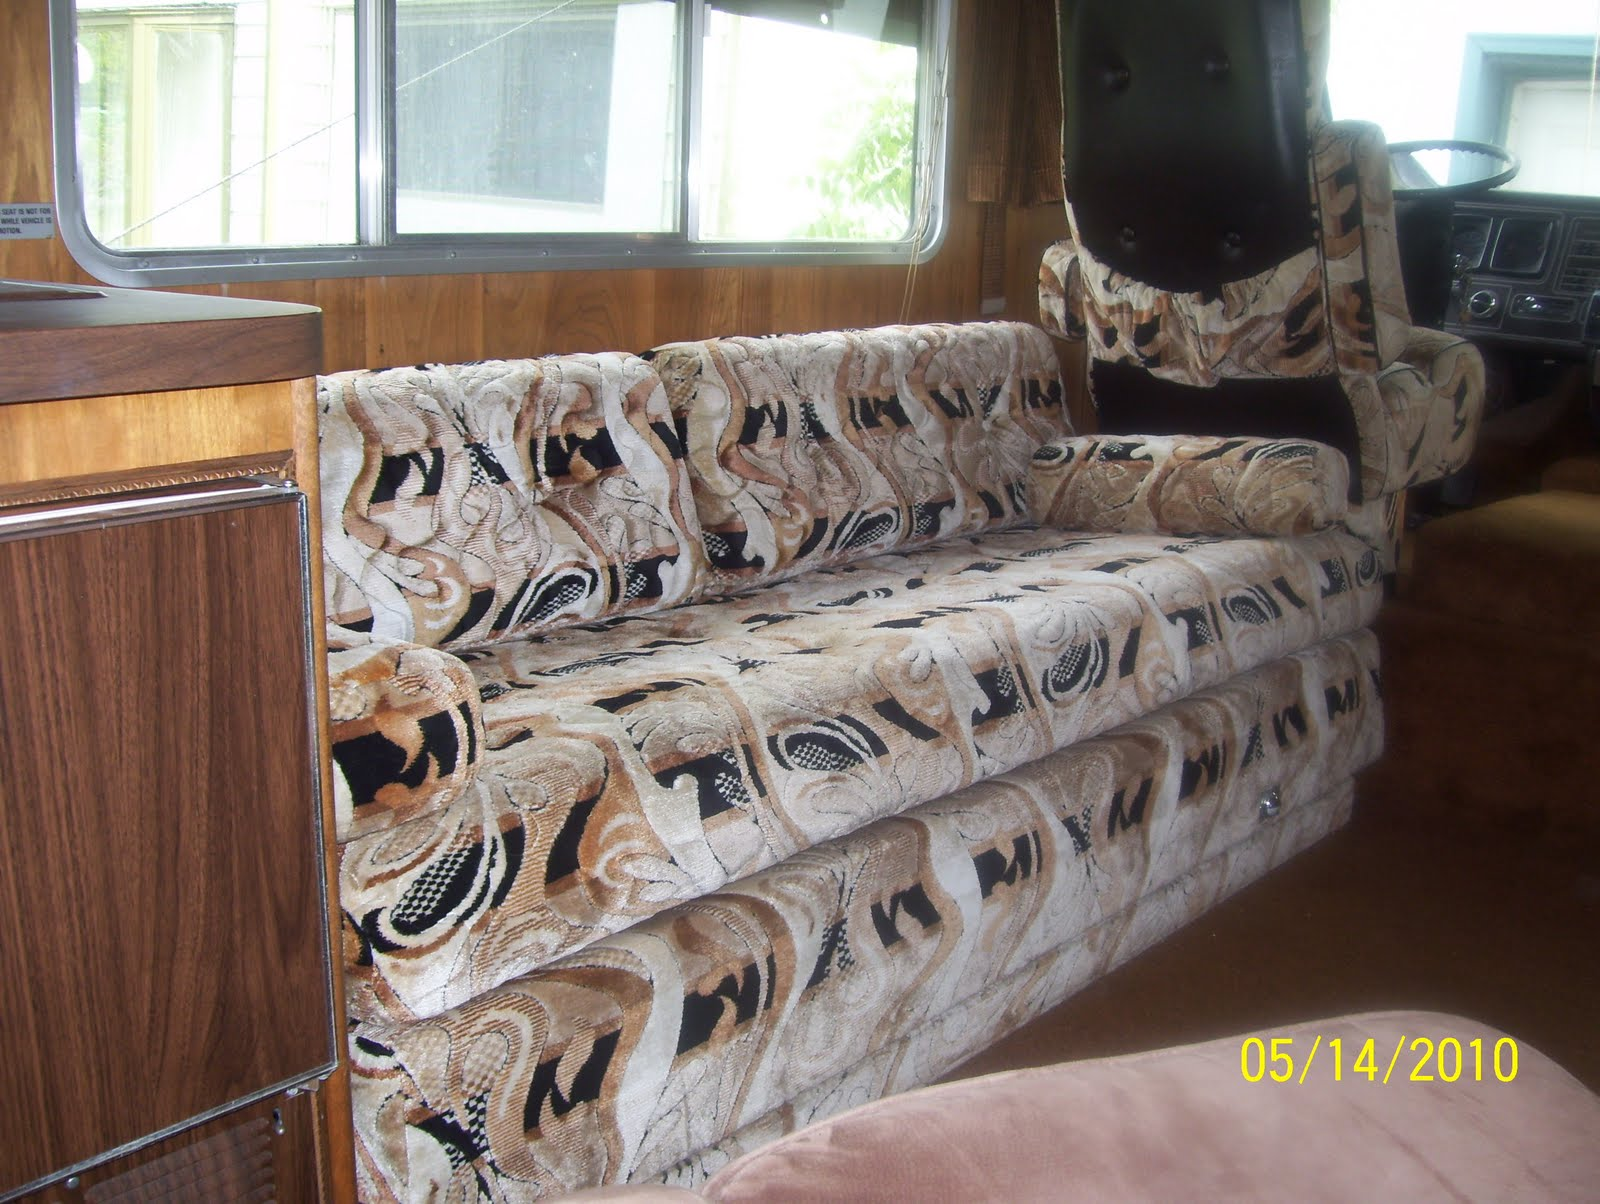 The Jack Knife Sofa Which Makes Into A Nice Comfy Bed. I Am Very Happy That  I Actually Like All Of The Original 1979 Upholstery And That It Is In  Really ...